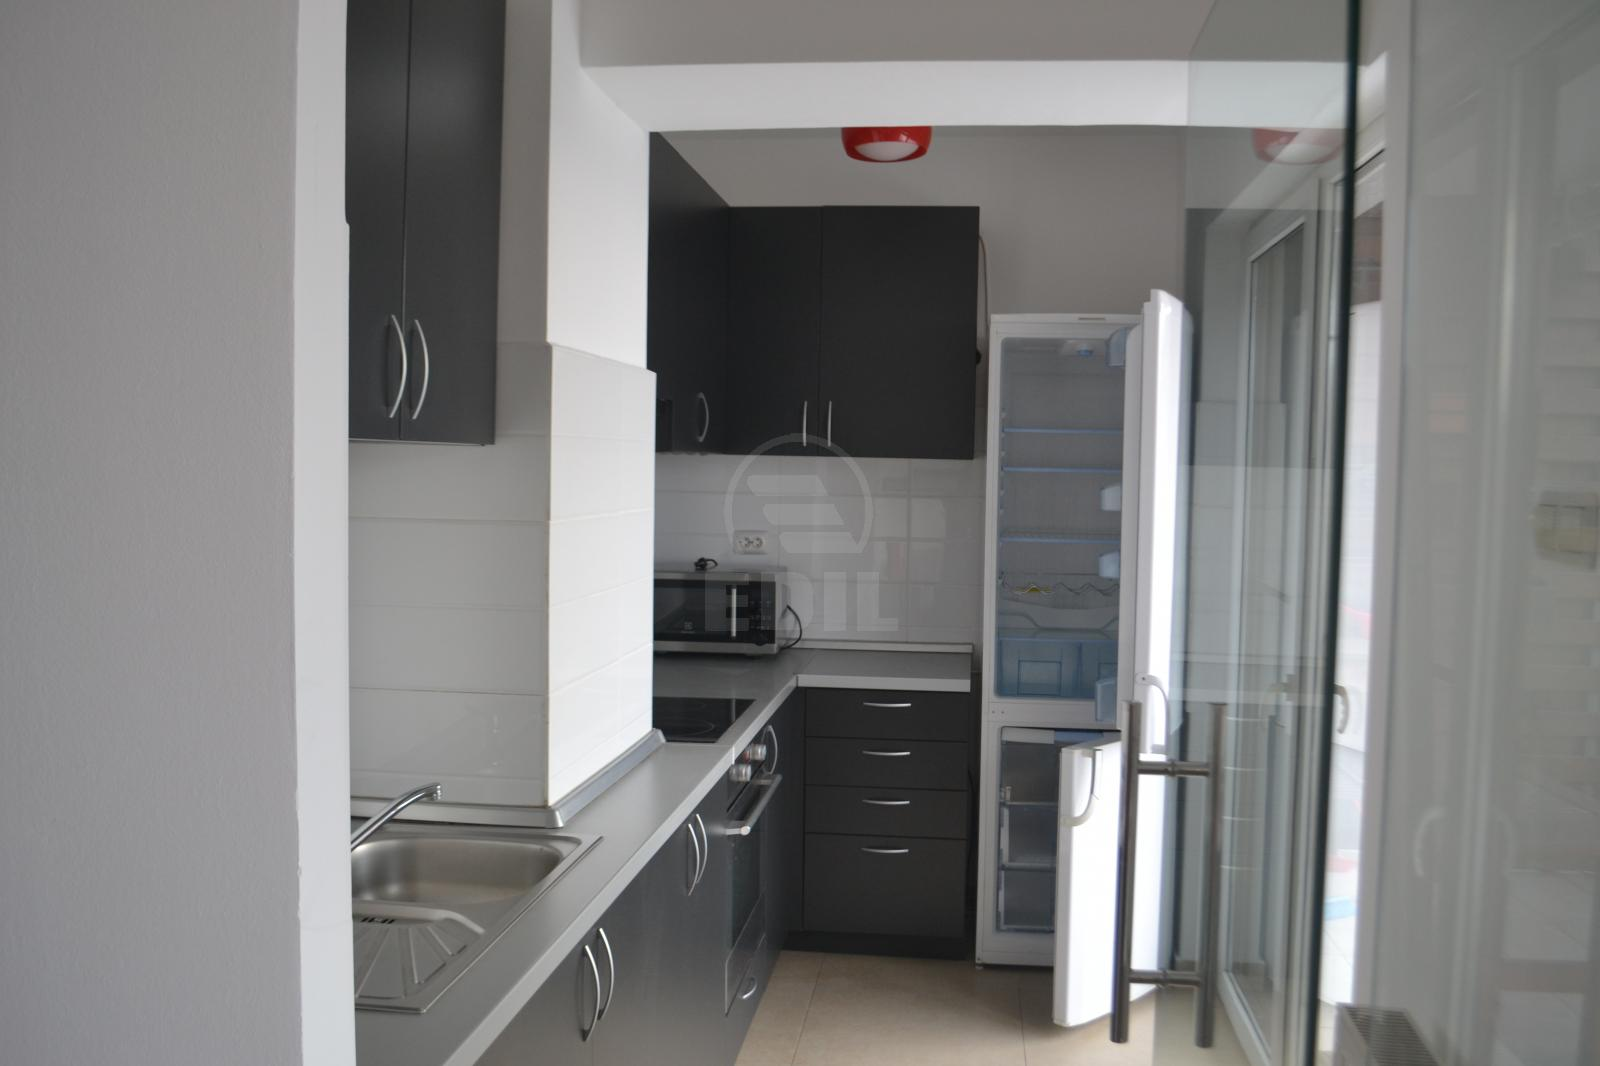 Apartment for rent 3 rooms, APCJ271208-2